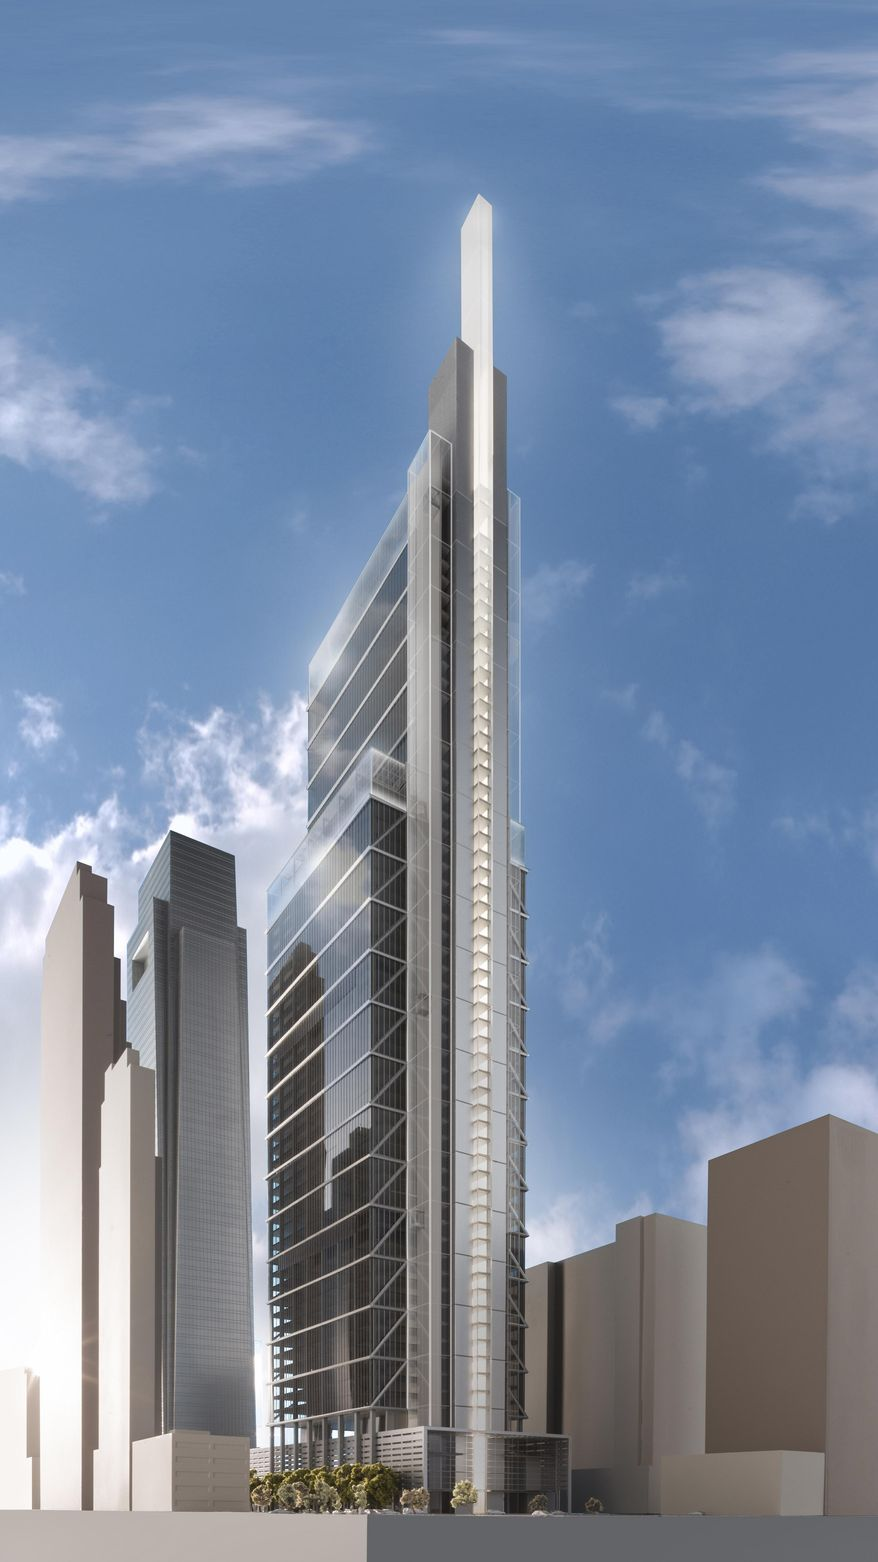 This artist rendering provided by Comcast Corp. on Wednesday, Jan. 15, 2014,  shows their planned new skyscraper. The Philadelphia-based company said it plans to build a $1.2 billion, 59-story technology center that will rise 1,121 feet next to the existing Comcast Center, which stands 975 feet tall and opened in June 2008.  (AP Photo/Comcast Corp.)